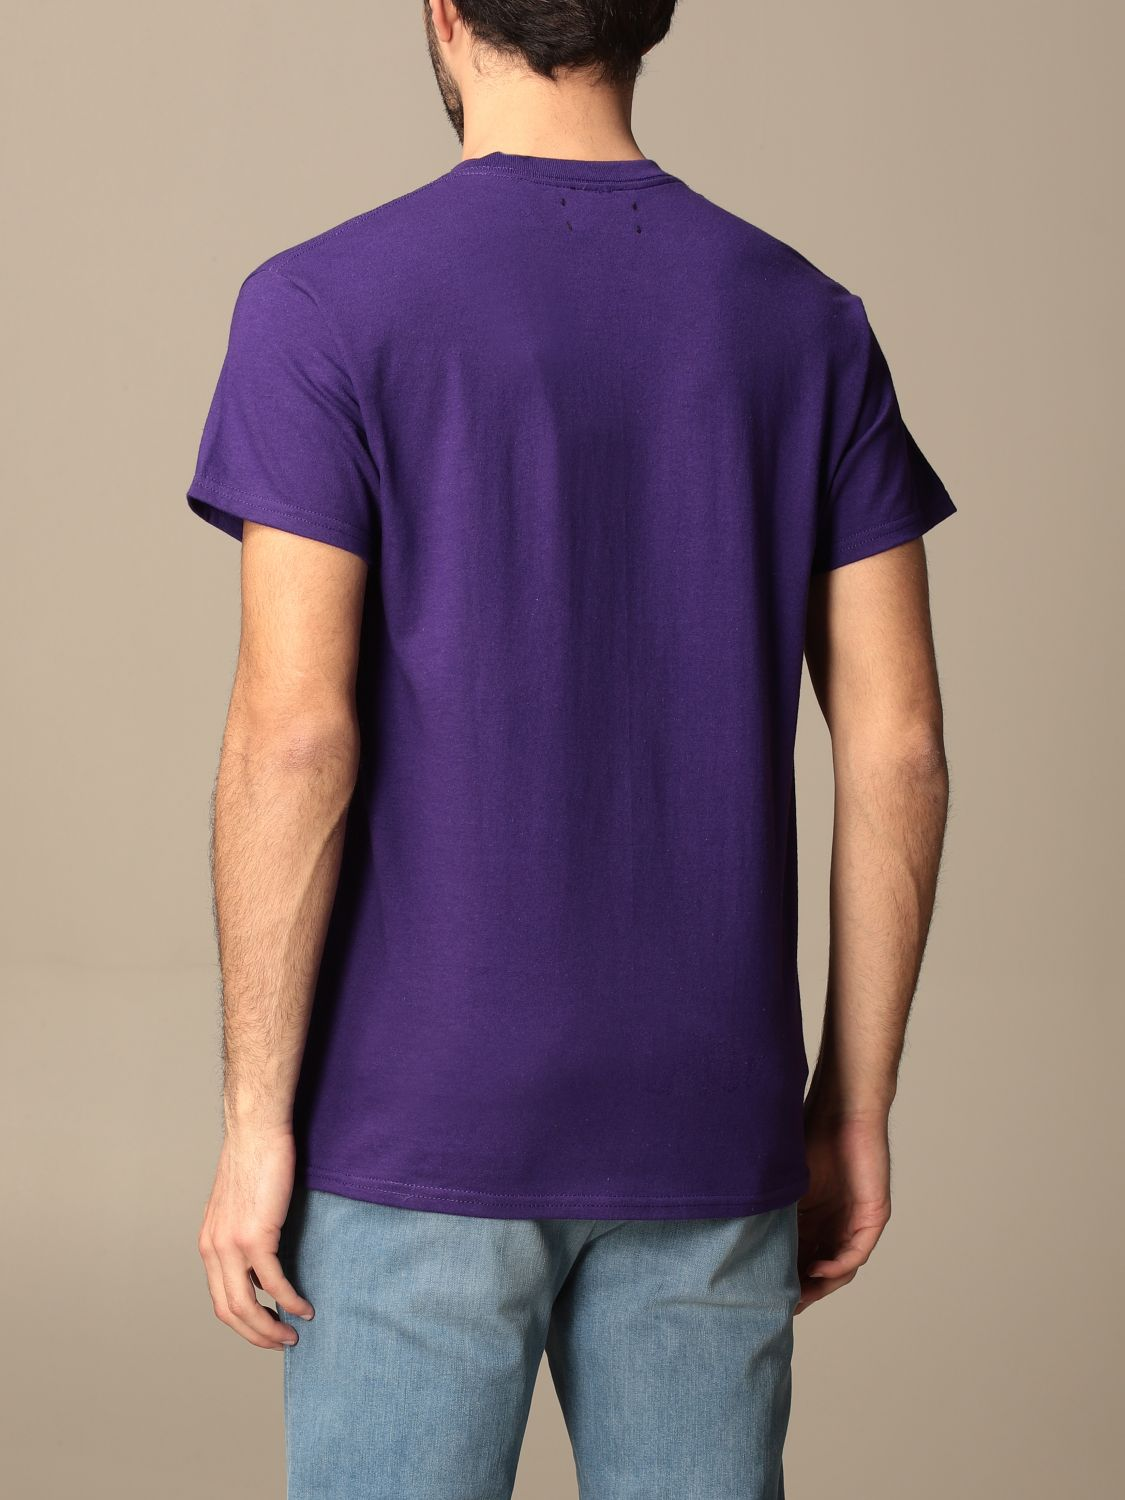 T-shirt Backsideclub: T-shirt men Backsideclub violet 2